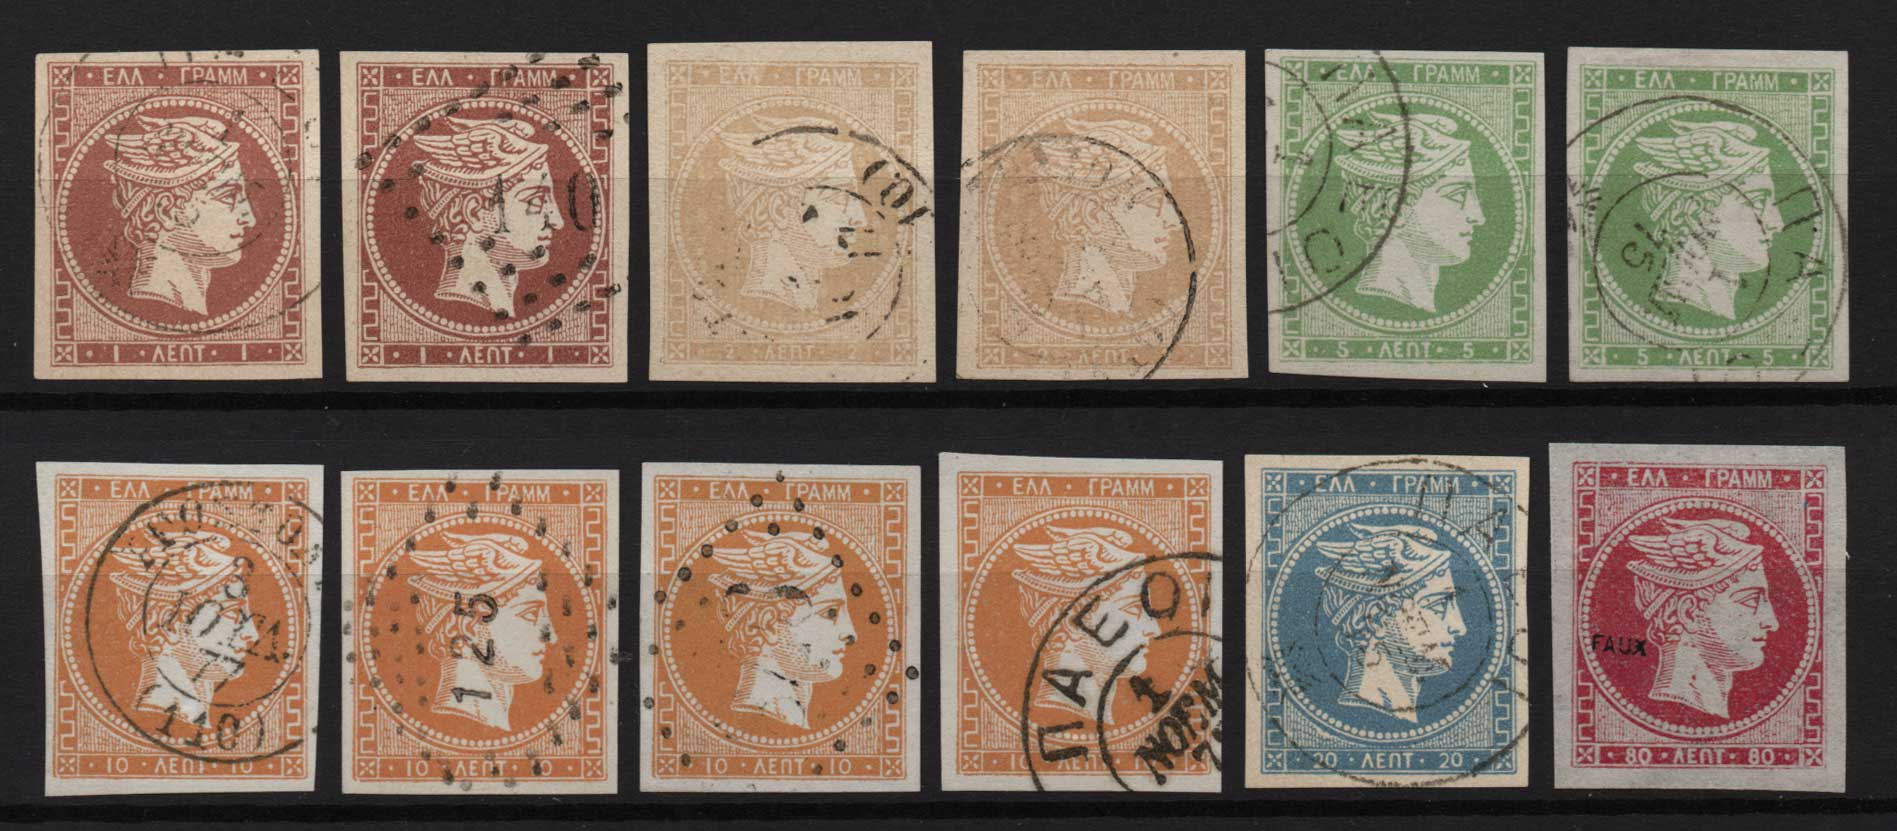 Lot 28 - GREECE- FORGERY forgery -  Athens Auctions Public Auction 63 General Stamp Sale